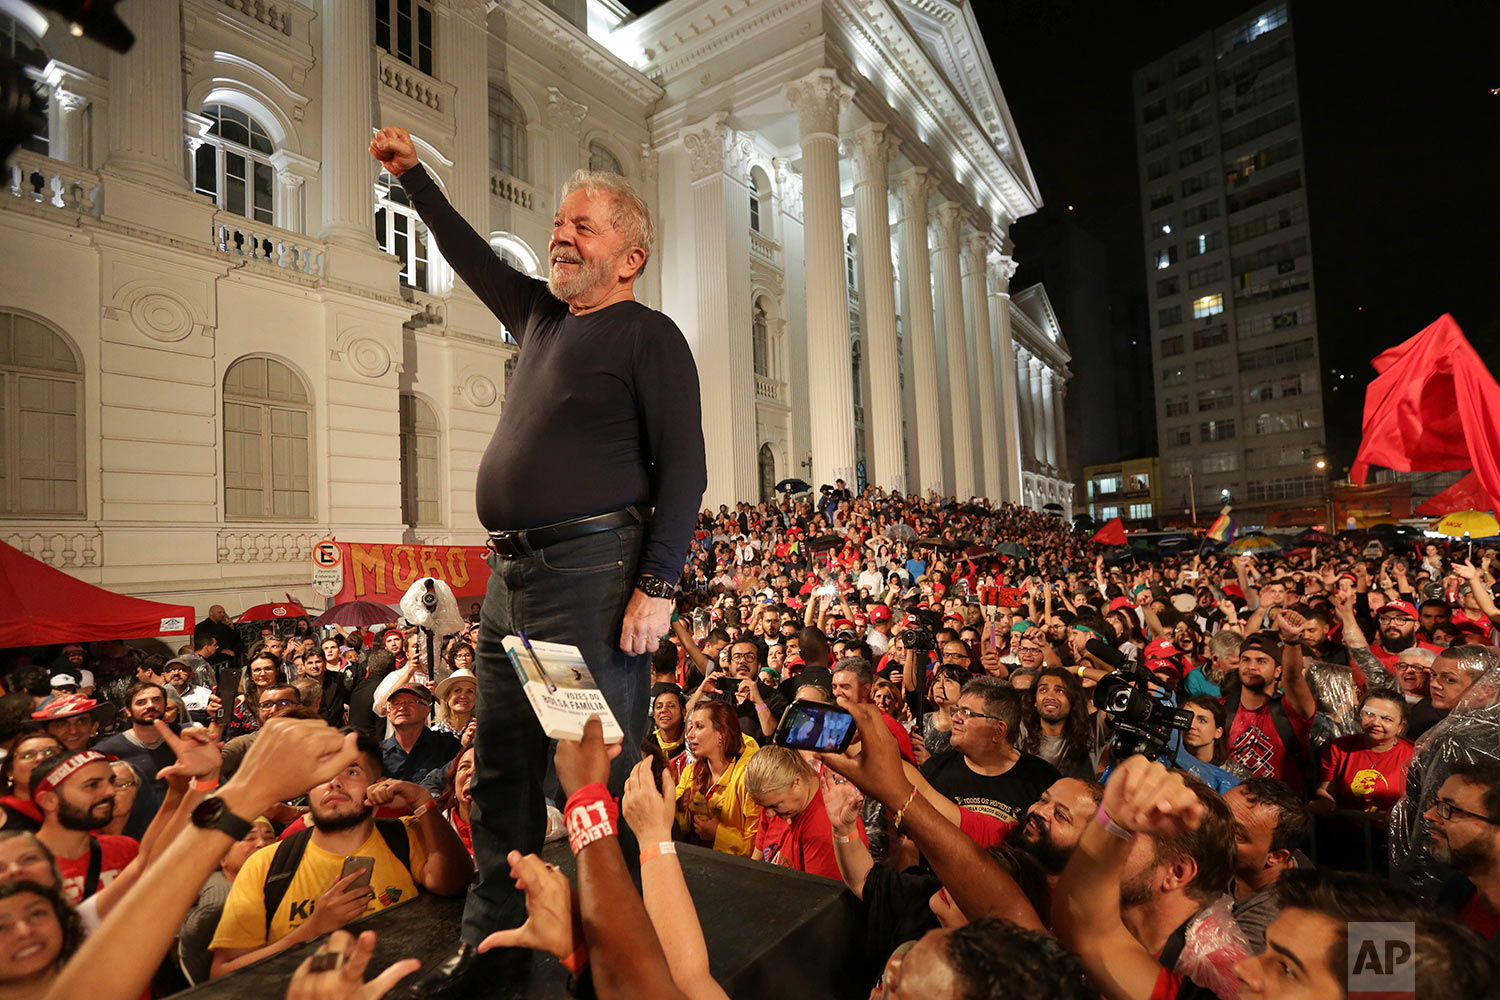 Brazil's former President Luiz Inacio Lula da Silva stands amid supporters during the final rally of his week-long campaign tour of southern Brazil, in Curitiba, Parana state, Brazil, March 28, 2018. Da Silva defended his record and denounced protests against him as the work of fascists, a day after an attack on his campaign caravan exposed the deep divisions ahead of heated elections. (AP Photo/Eraldo Peres)